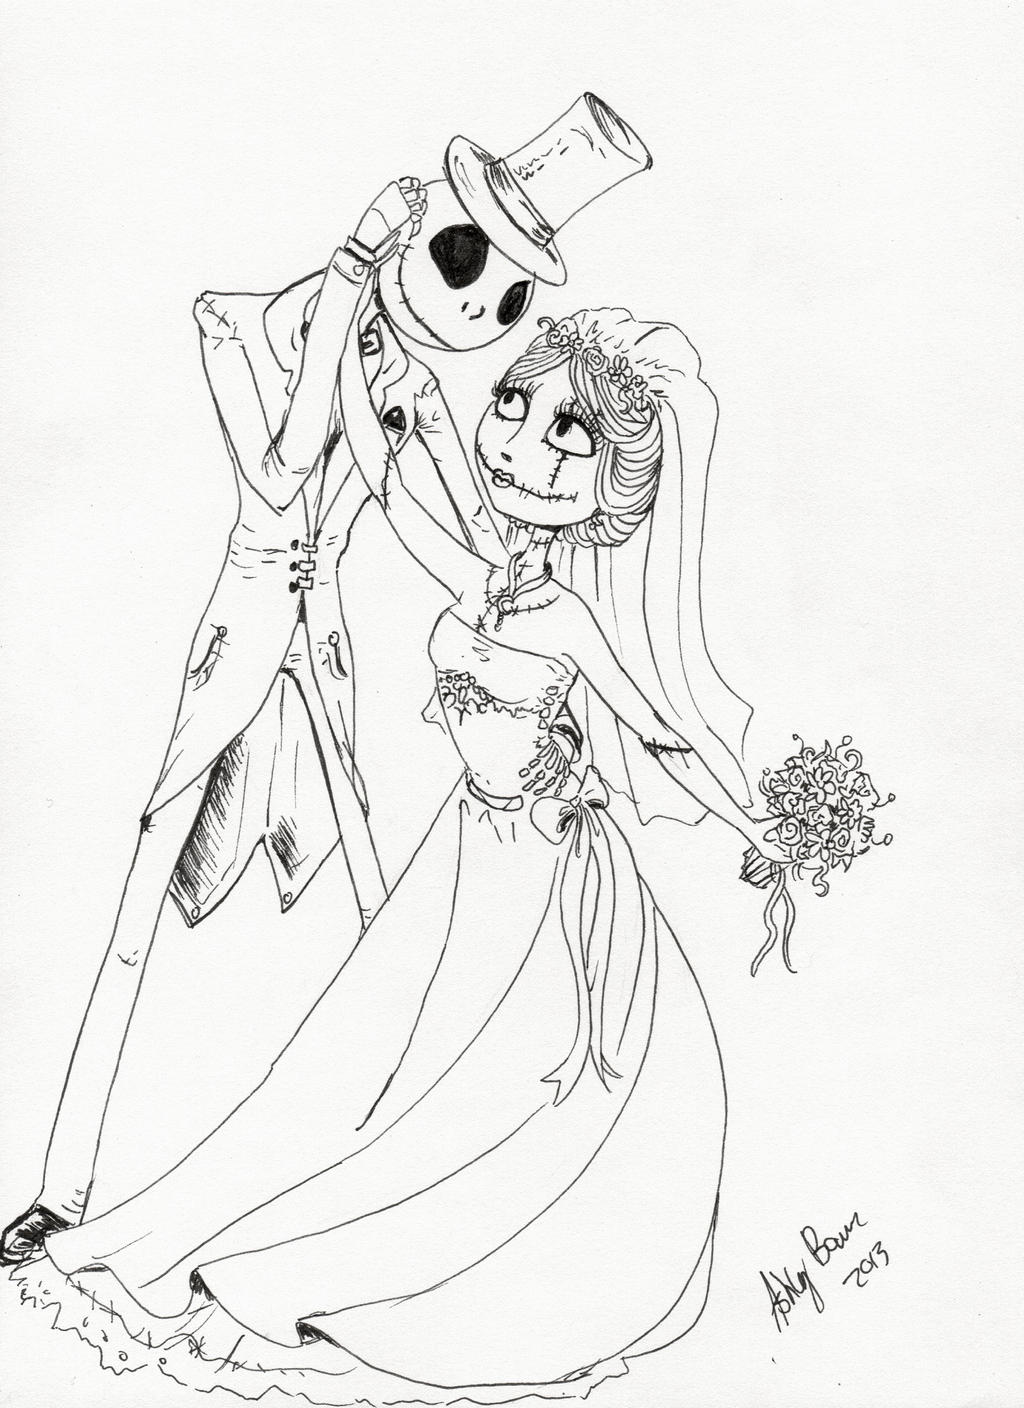 jack and sally love by Angel2489 on DeviantArt